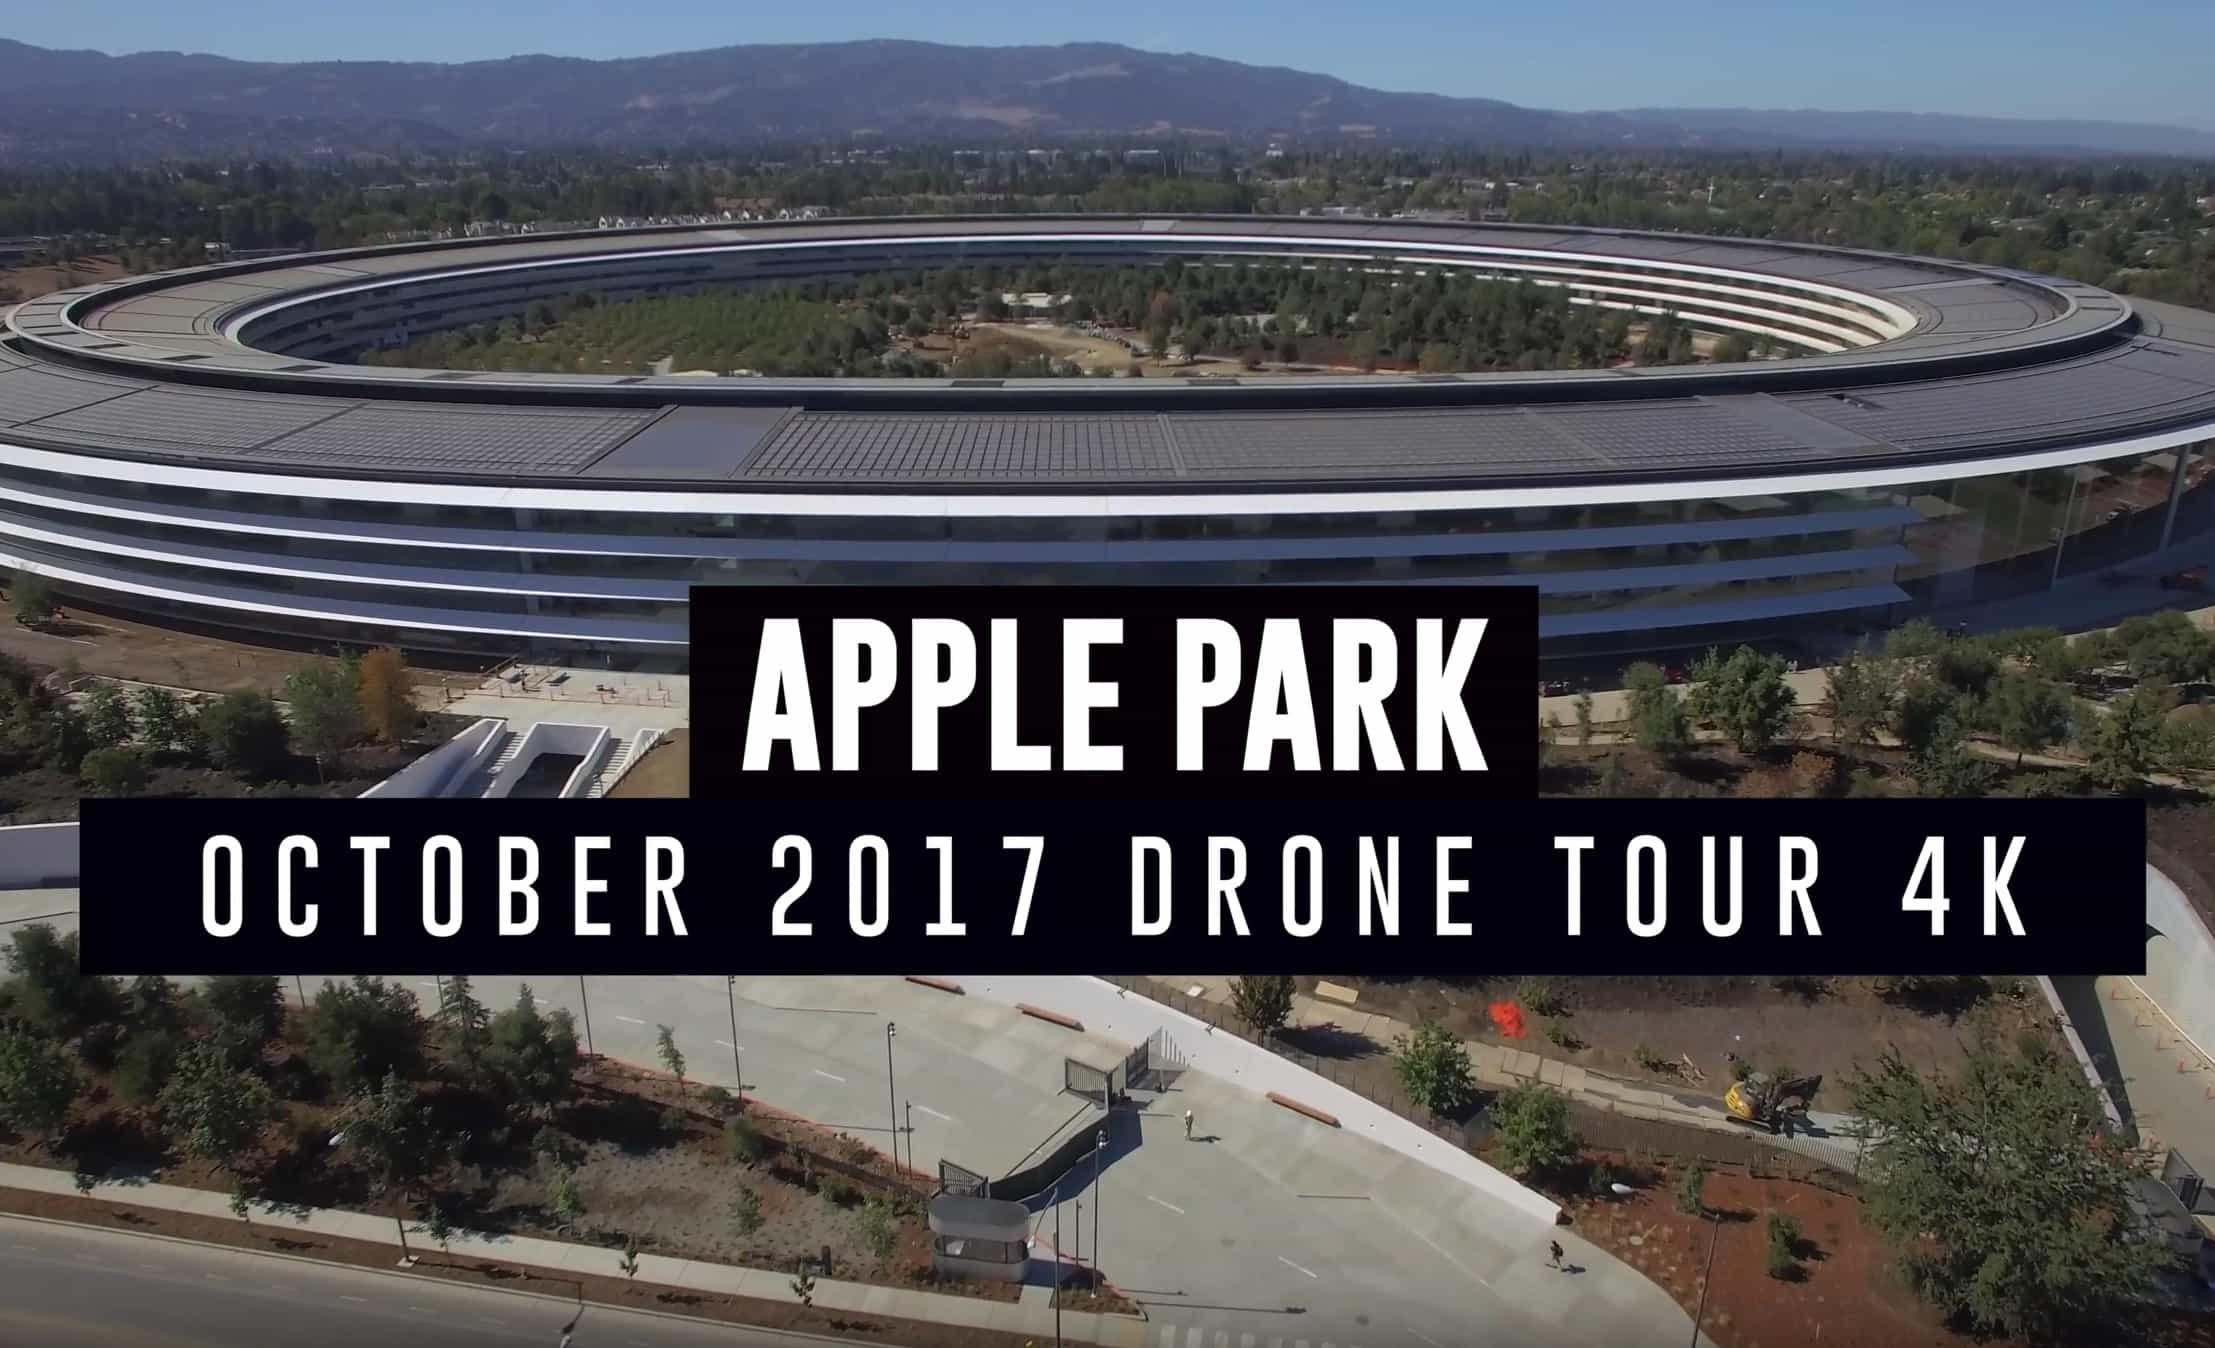 Apple Park flyover